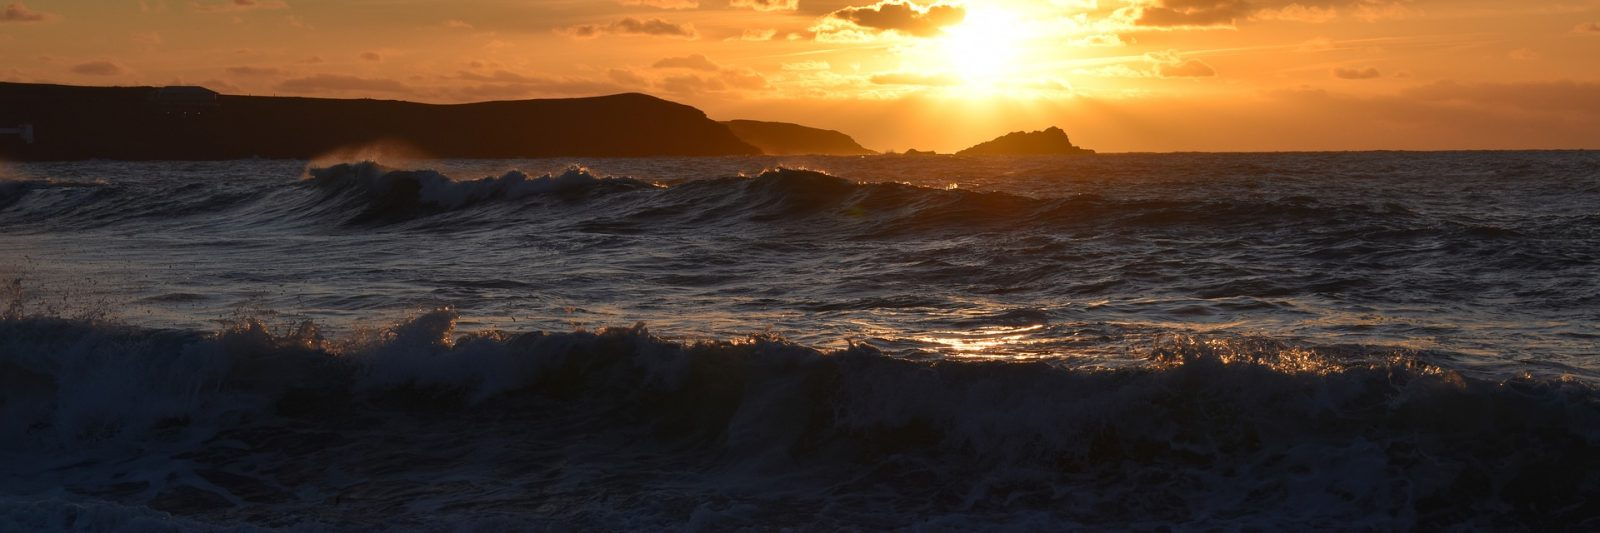 An image of the Cornish beach at sunset